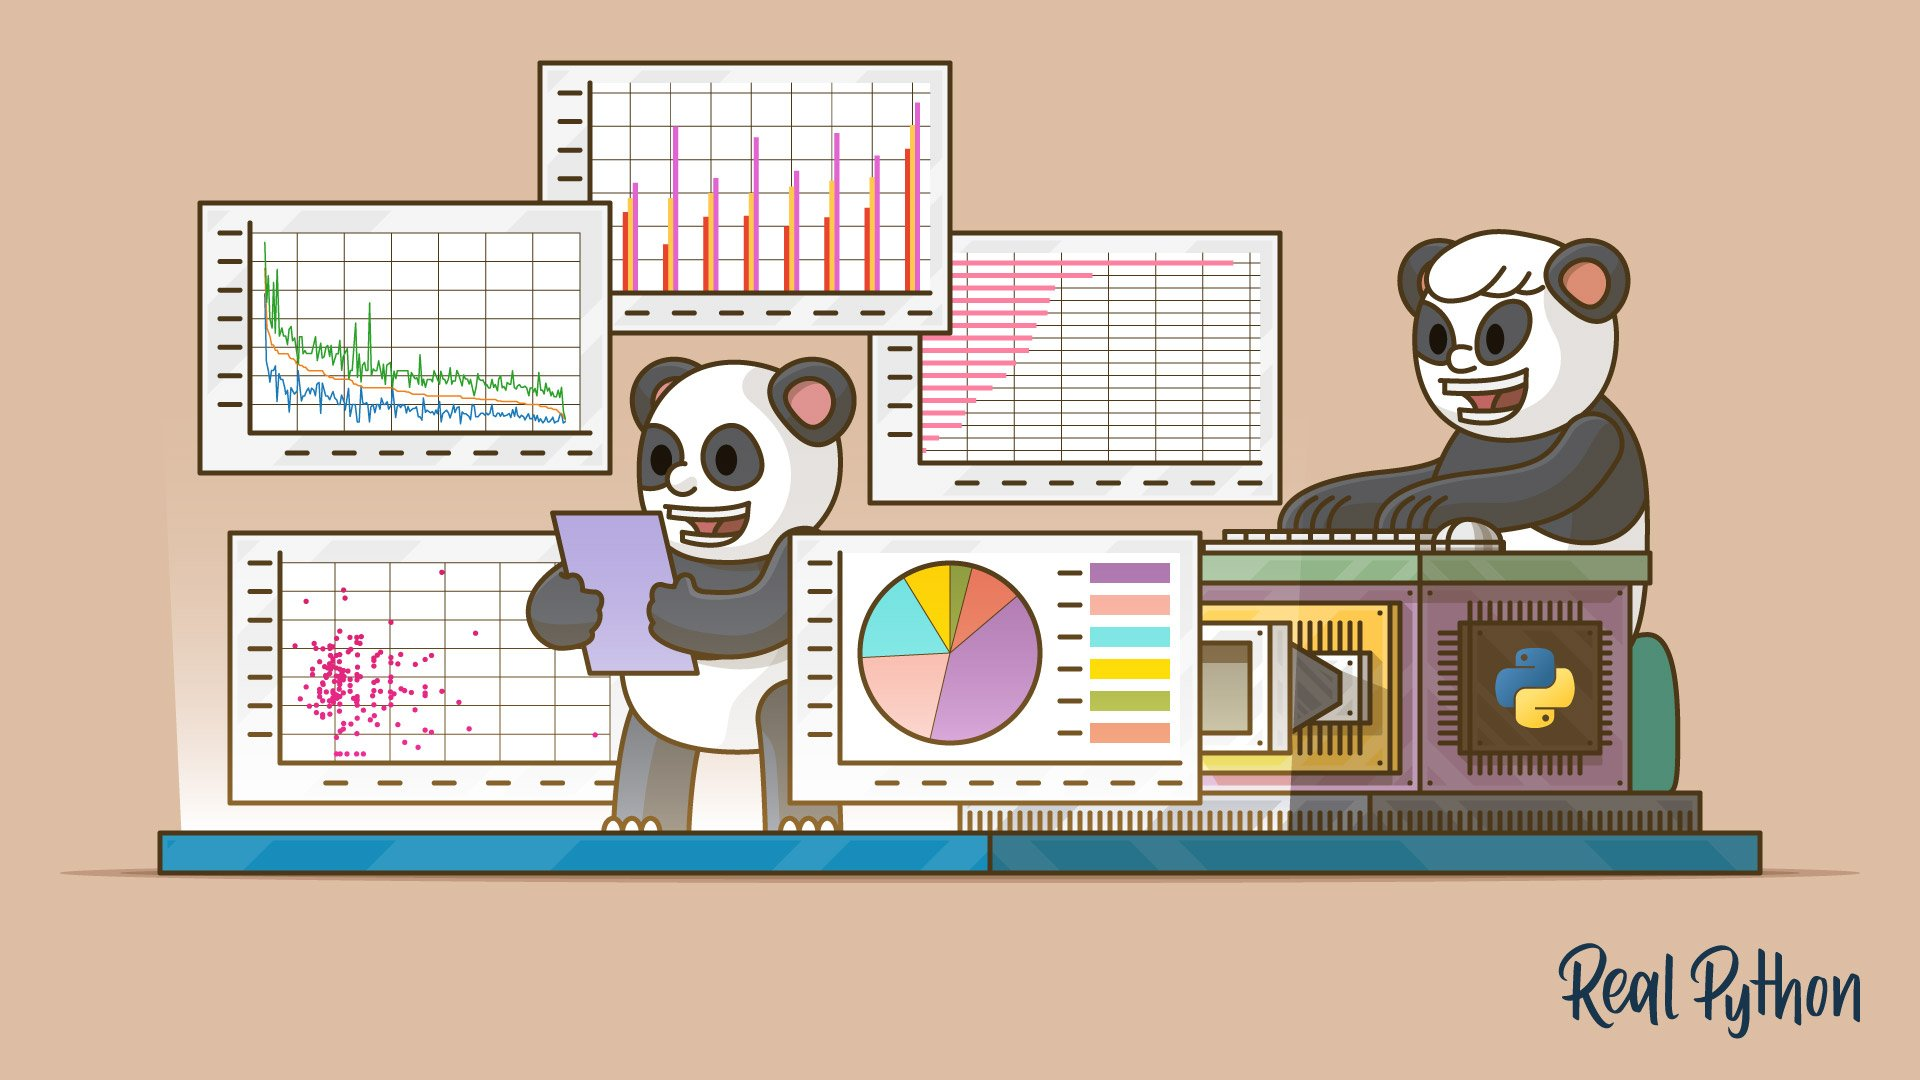 Plot With Pandas: Python Data Visualization for Beginners